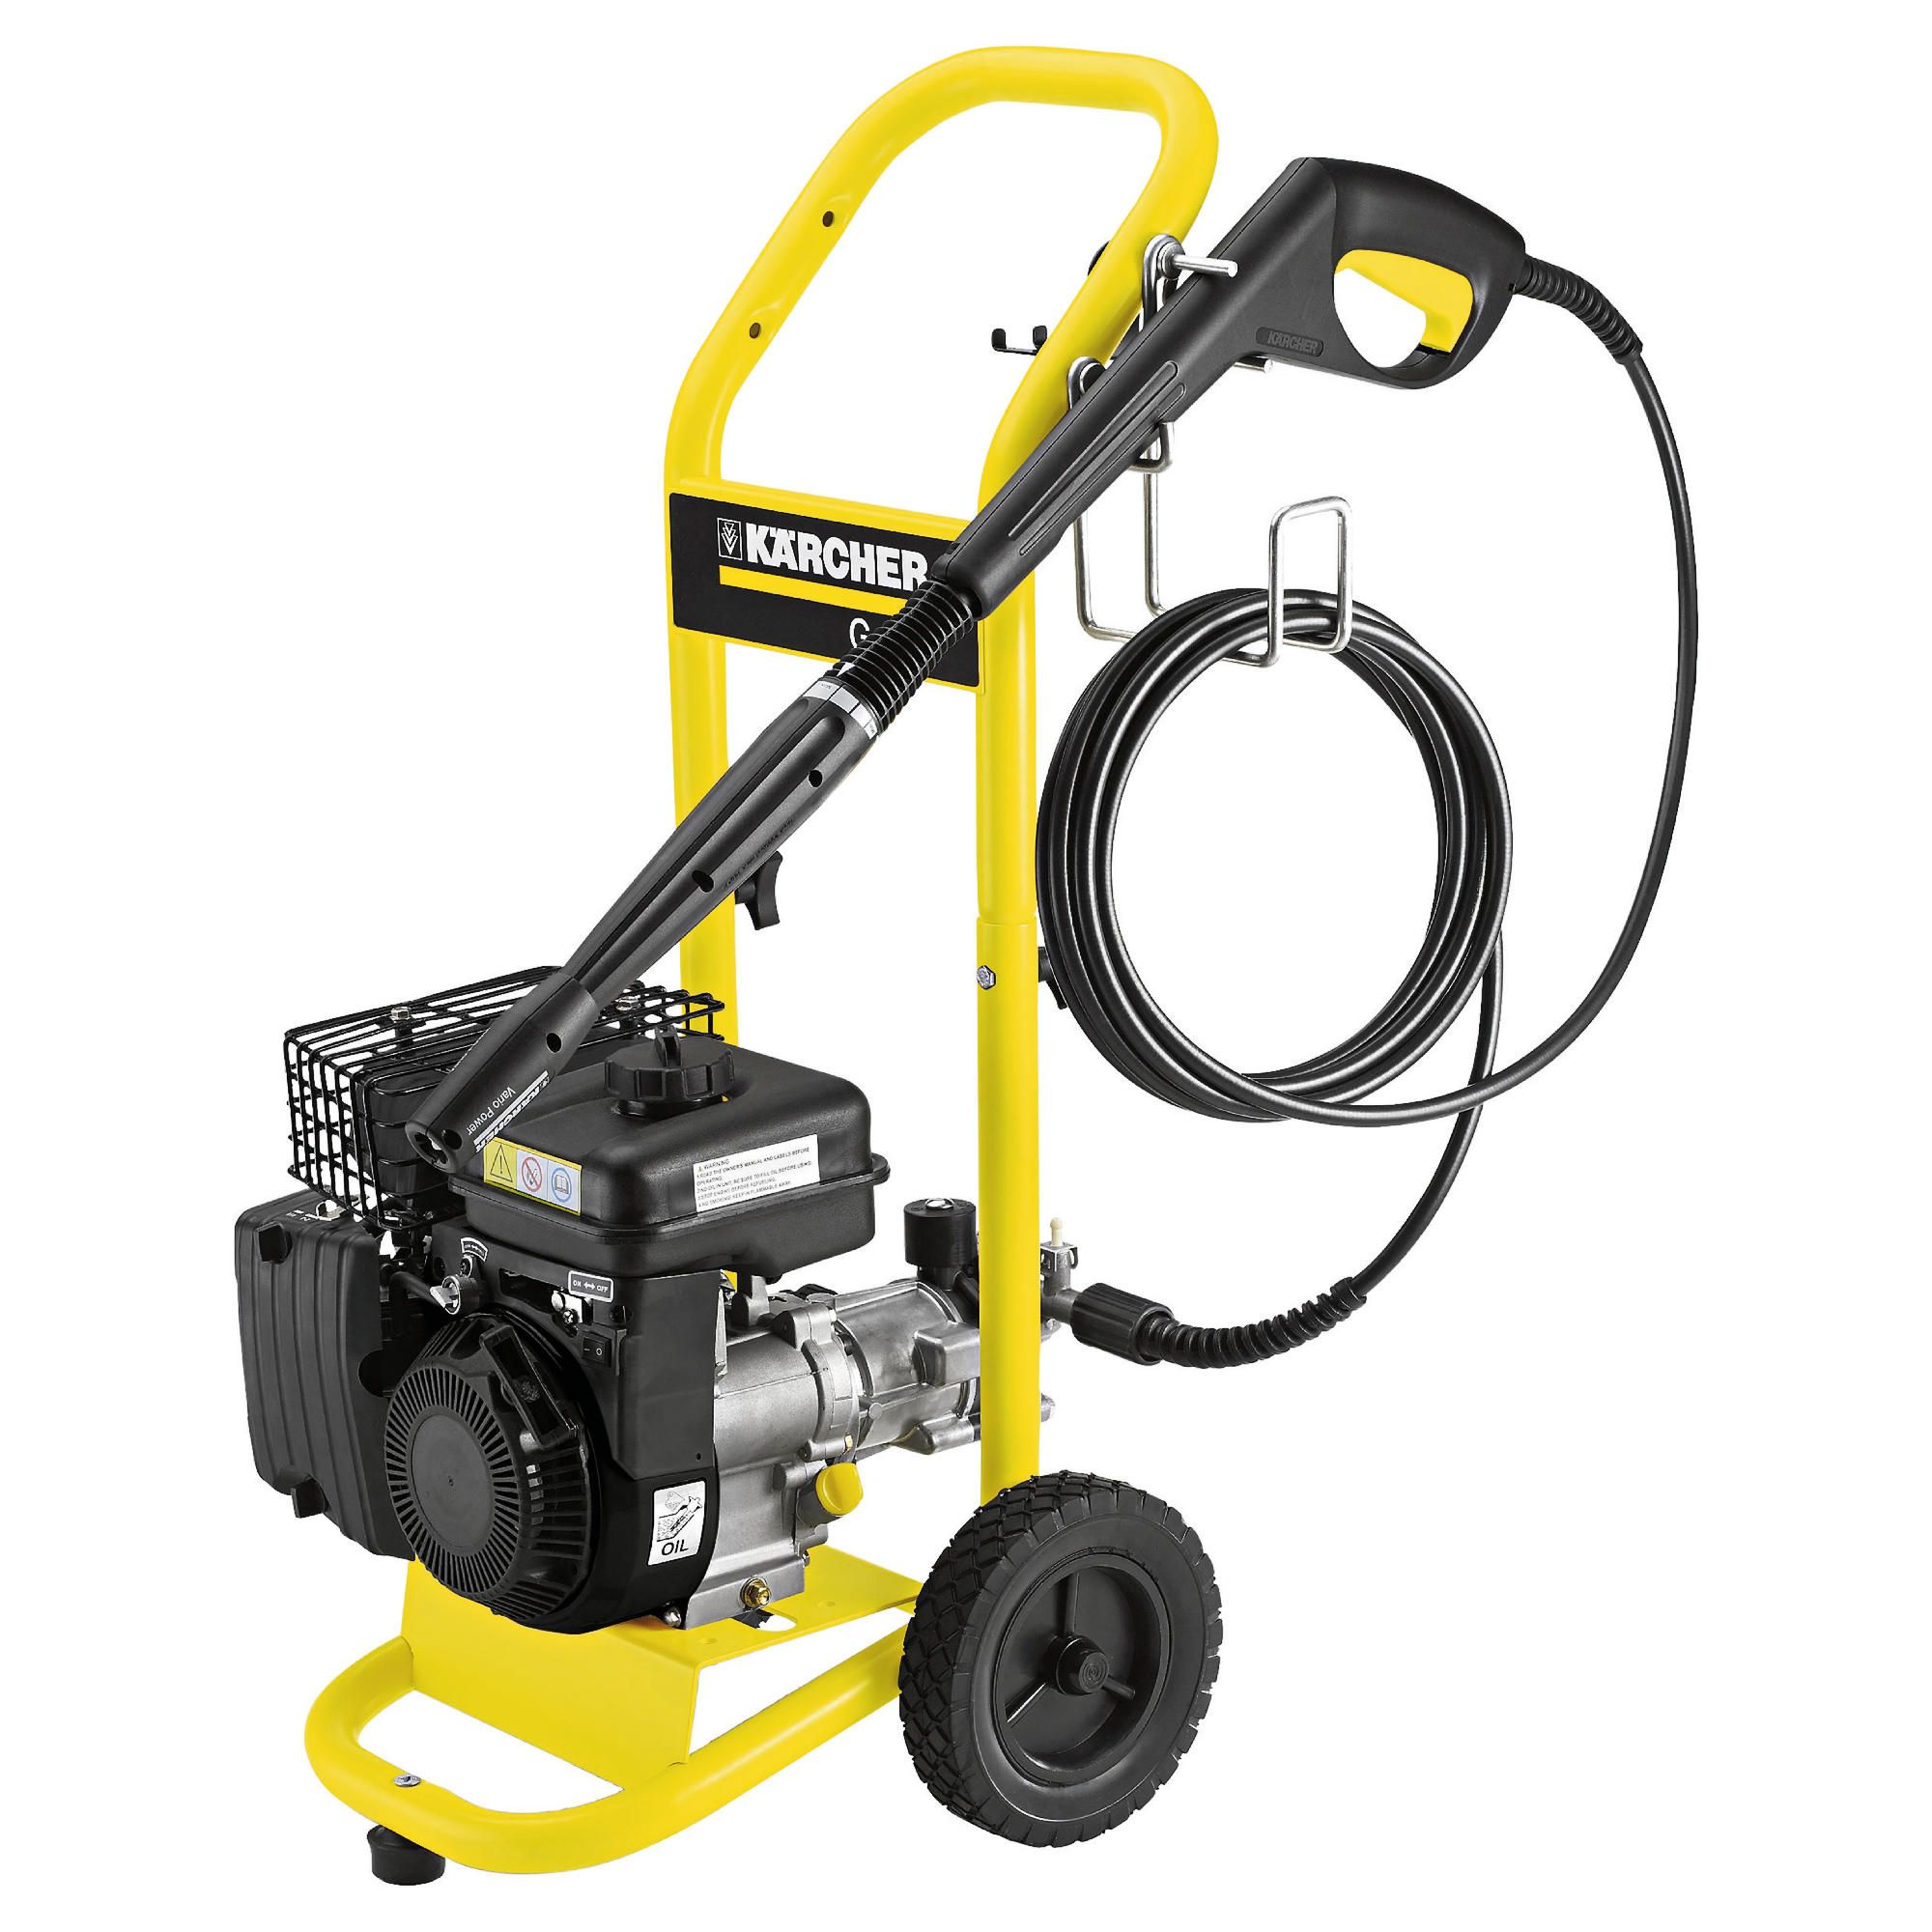 Karcher G4.10 Petrol Pressure Washer at Tescos Direct